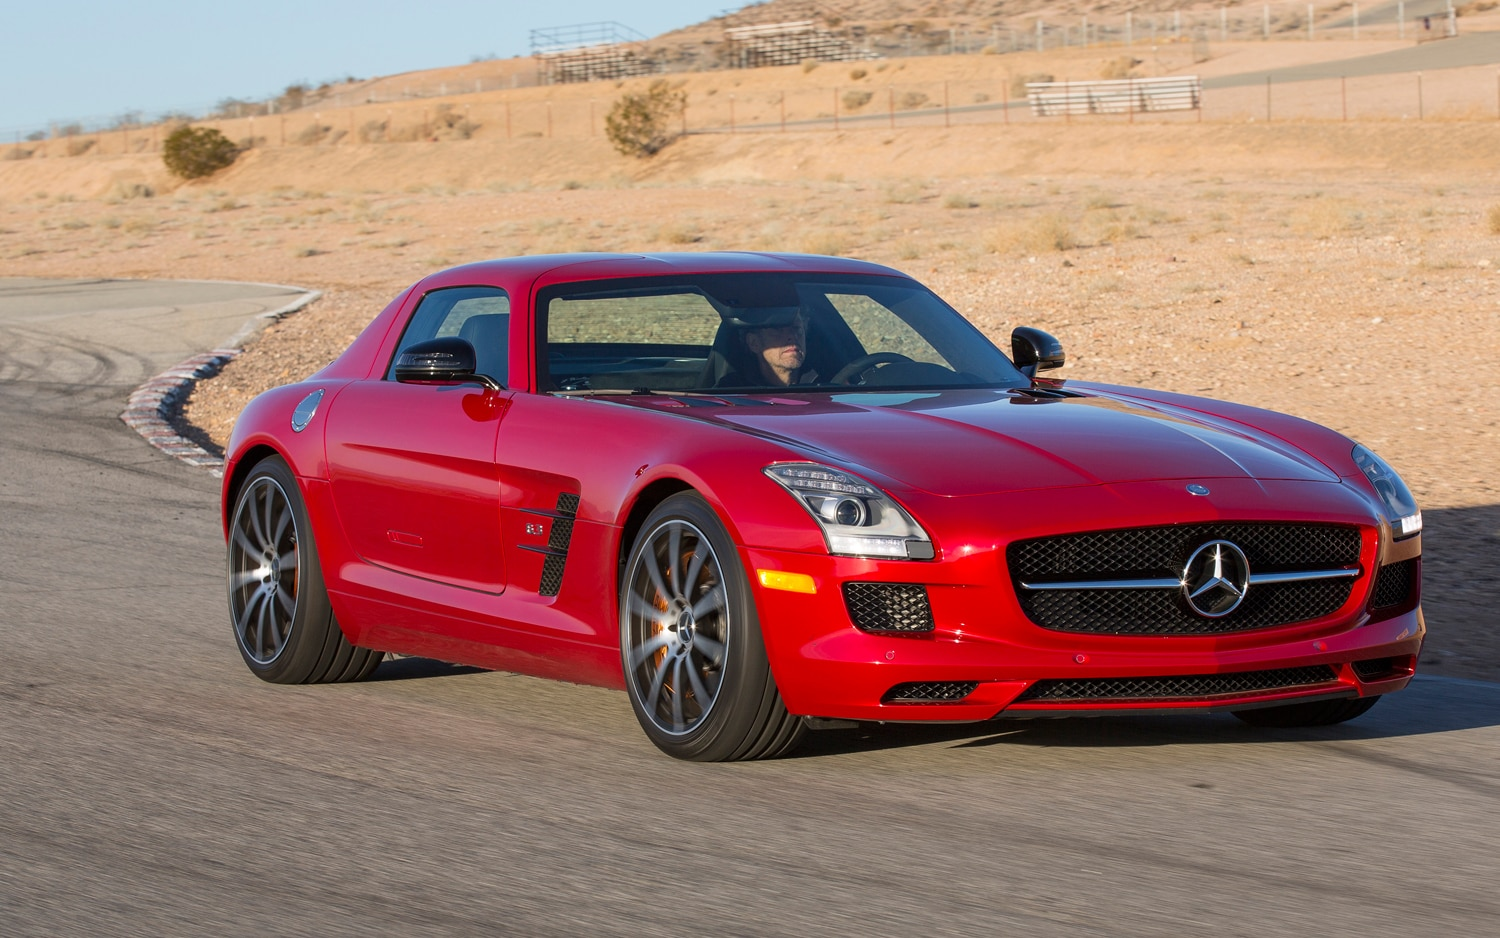 Mercedes Benz SLS AMG GT Front Right Side View1